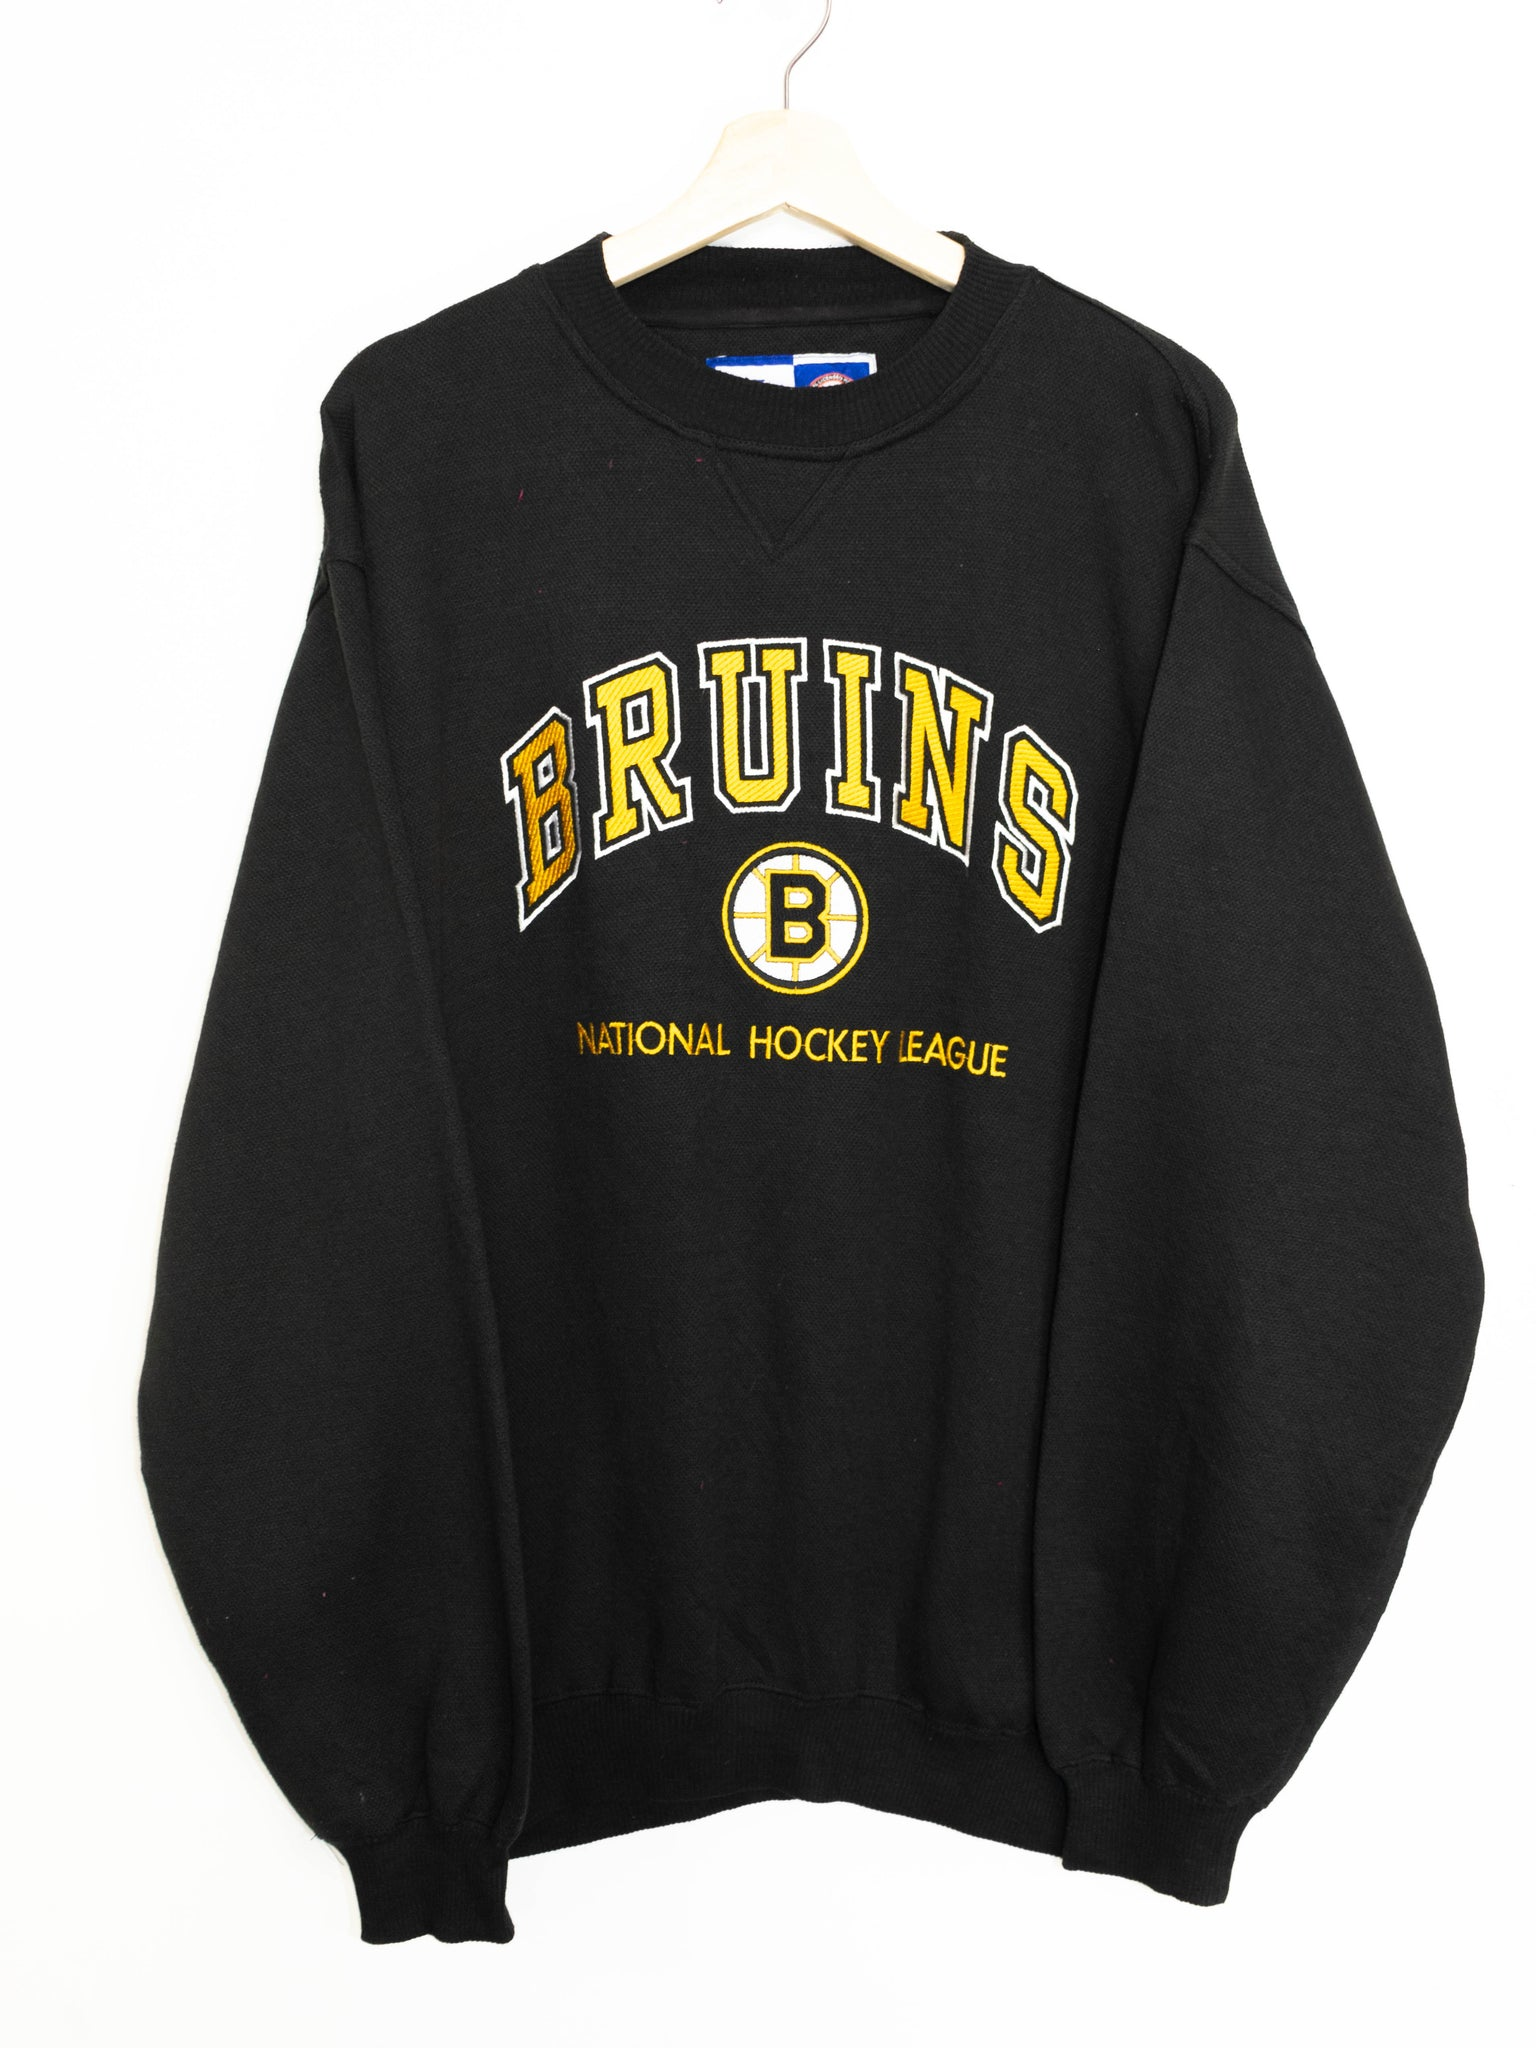 Vintage Bruins Hockey League size: L